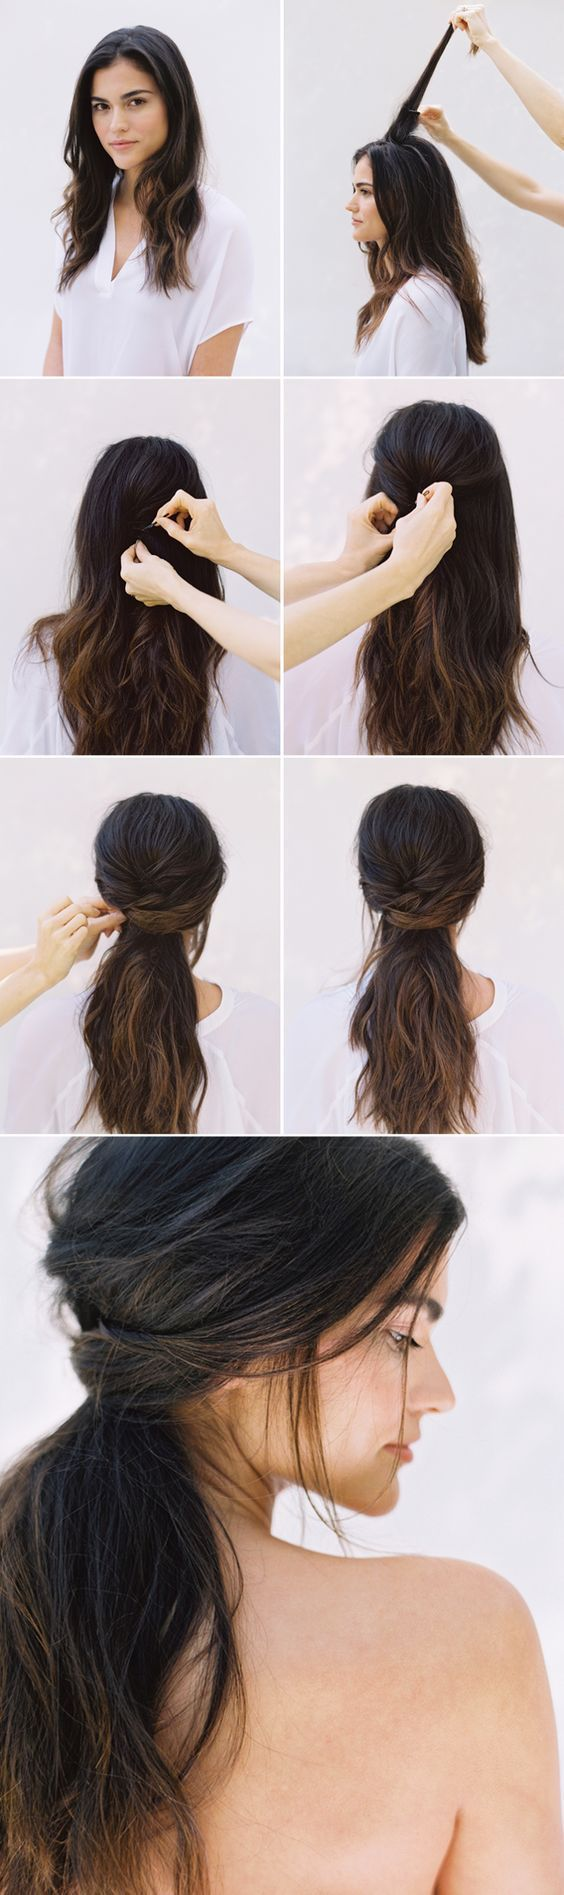 #Hairlook #Hair #cabello #ponytail